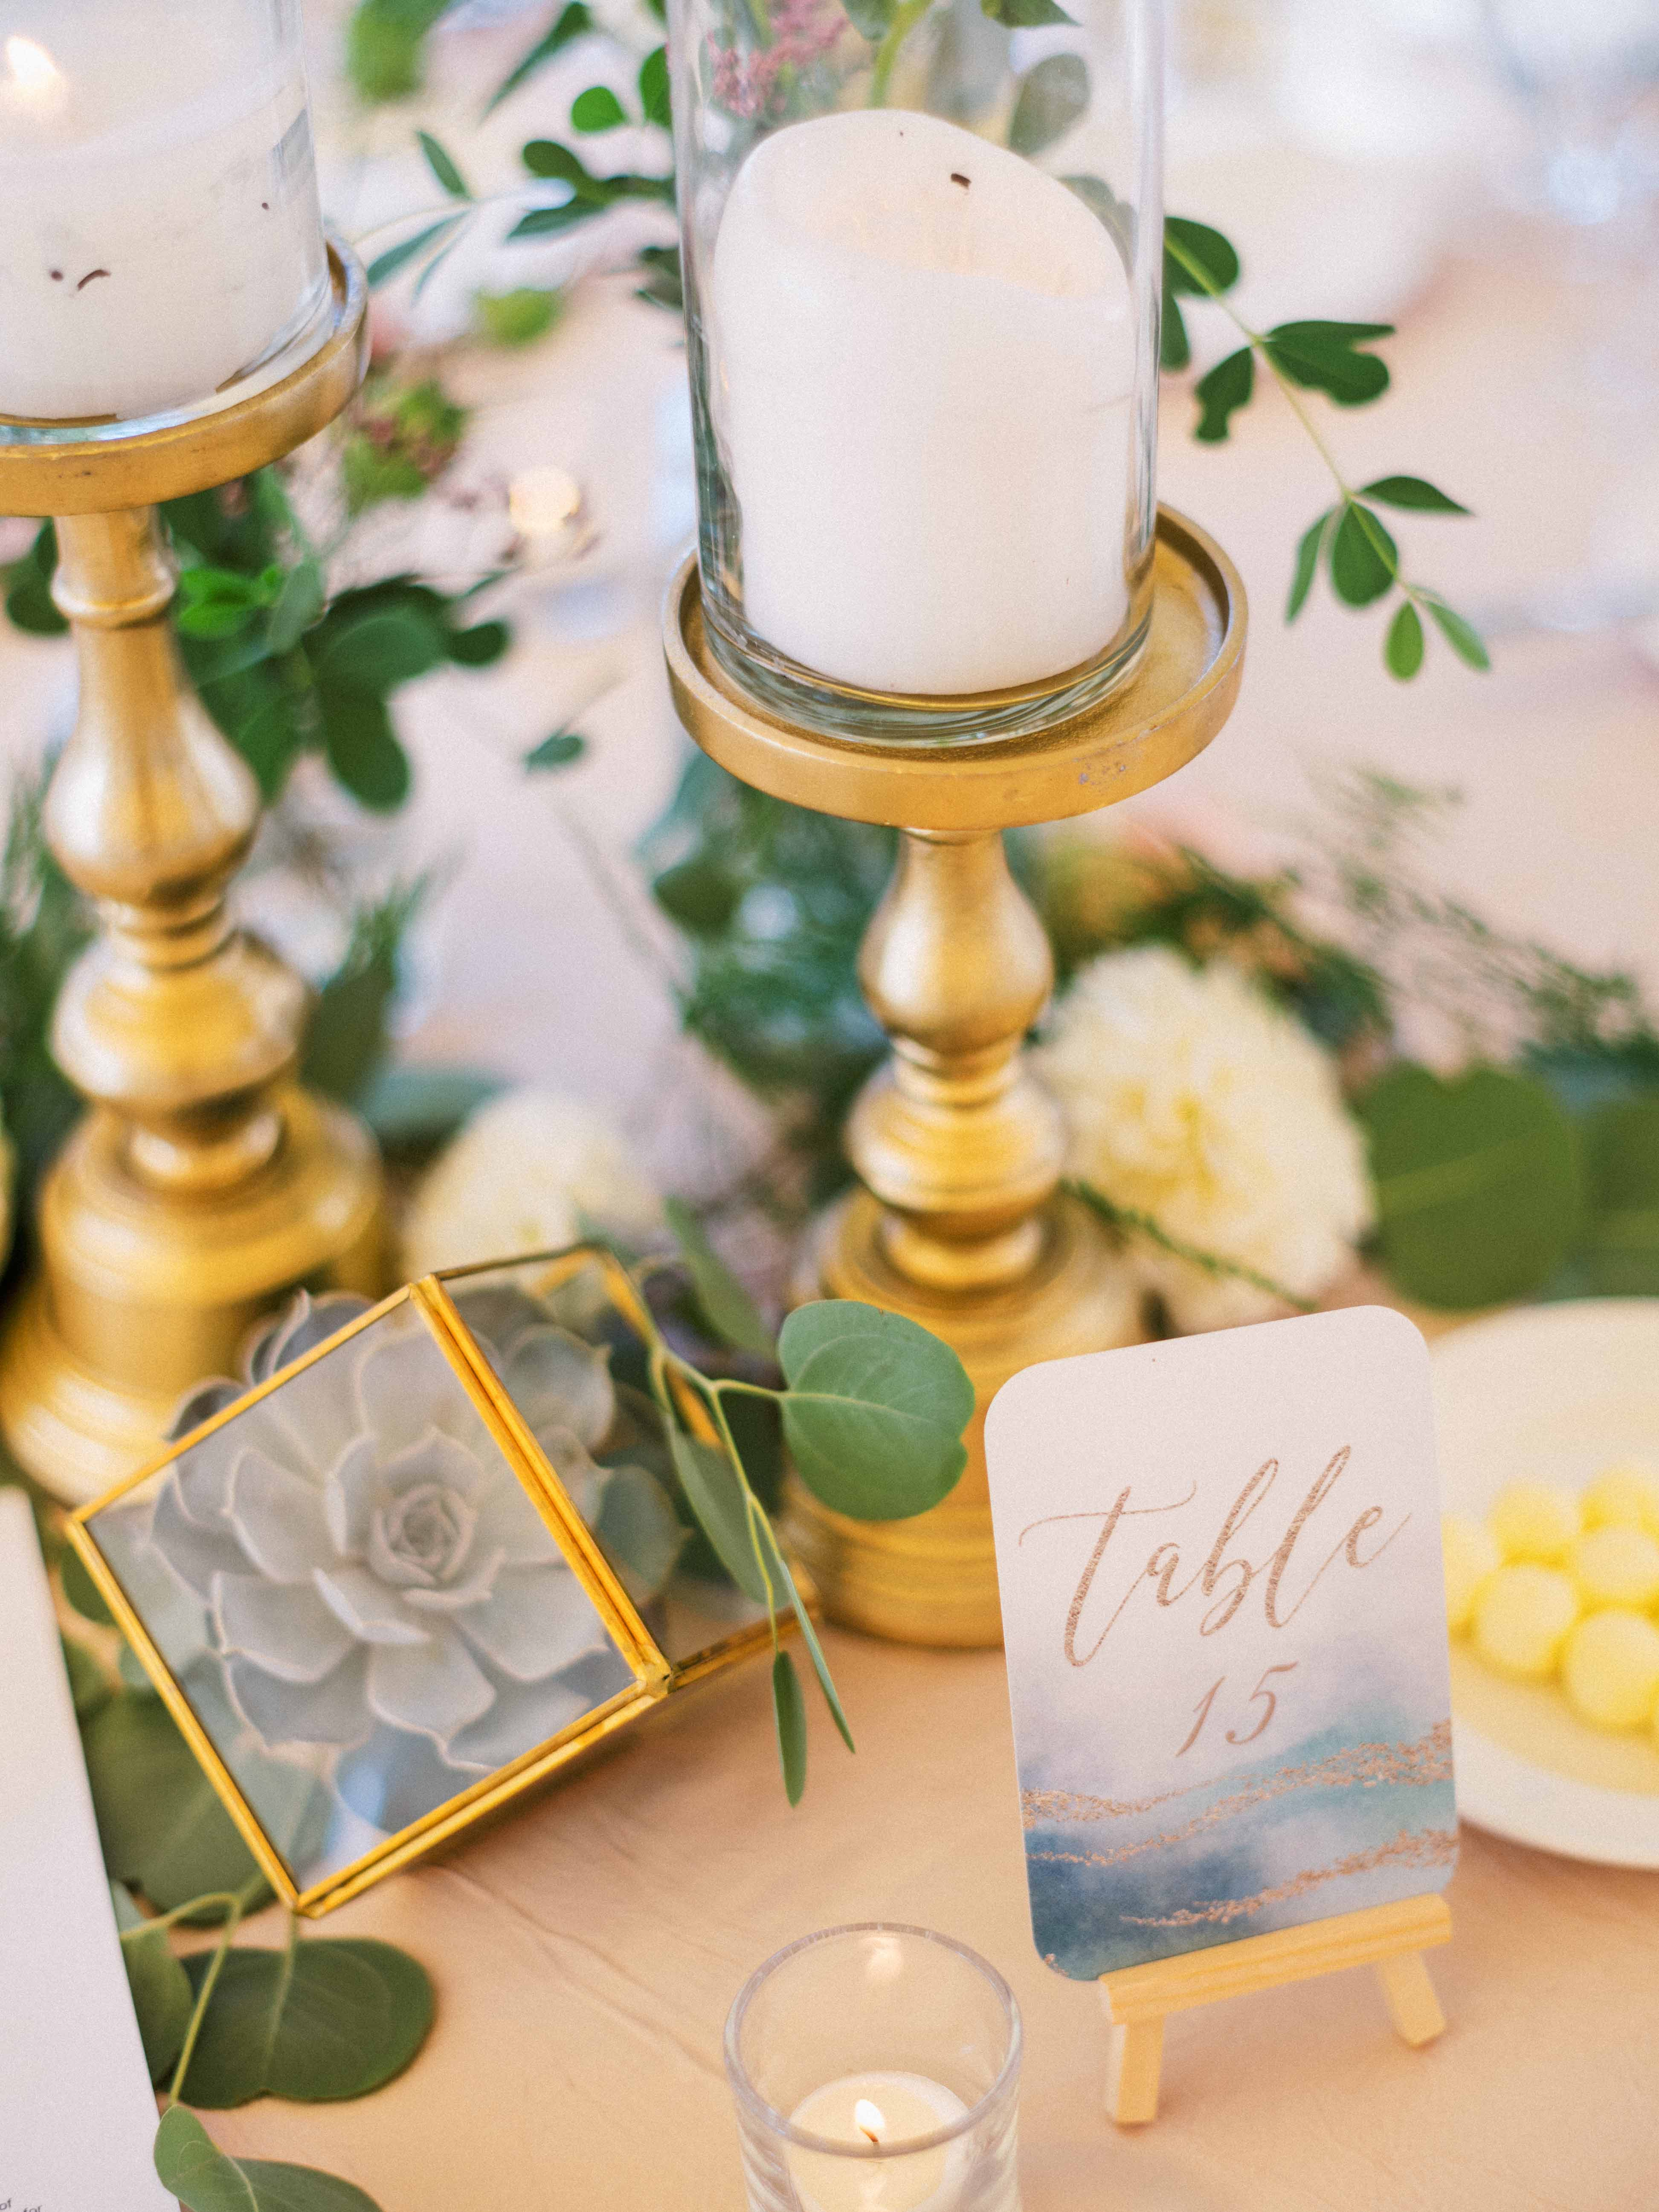 Centerpiece detail with candles - Woodmark Hotel Wedding by Flora Nova Design Seattle